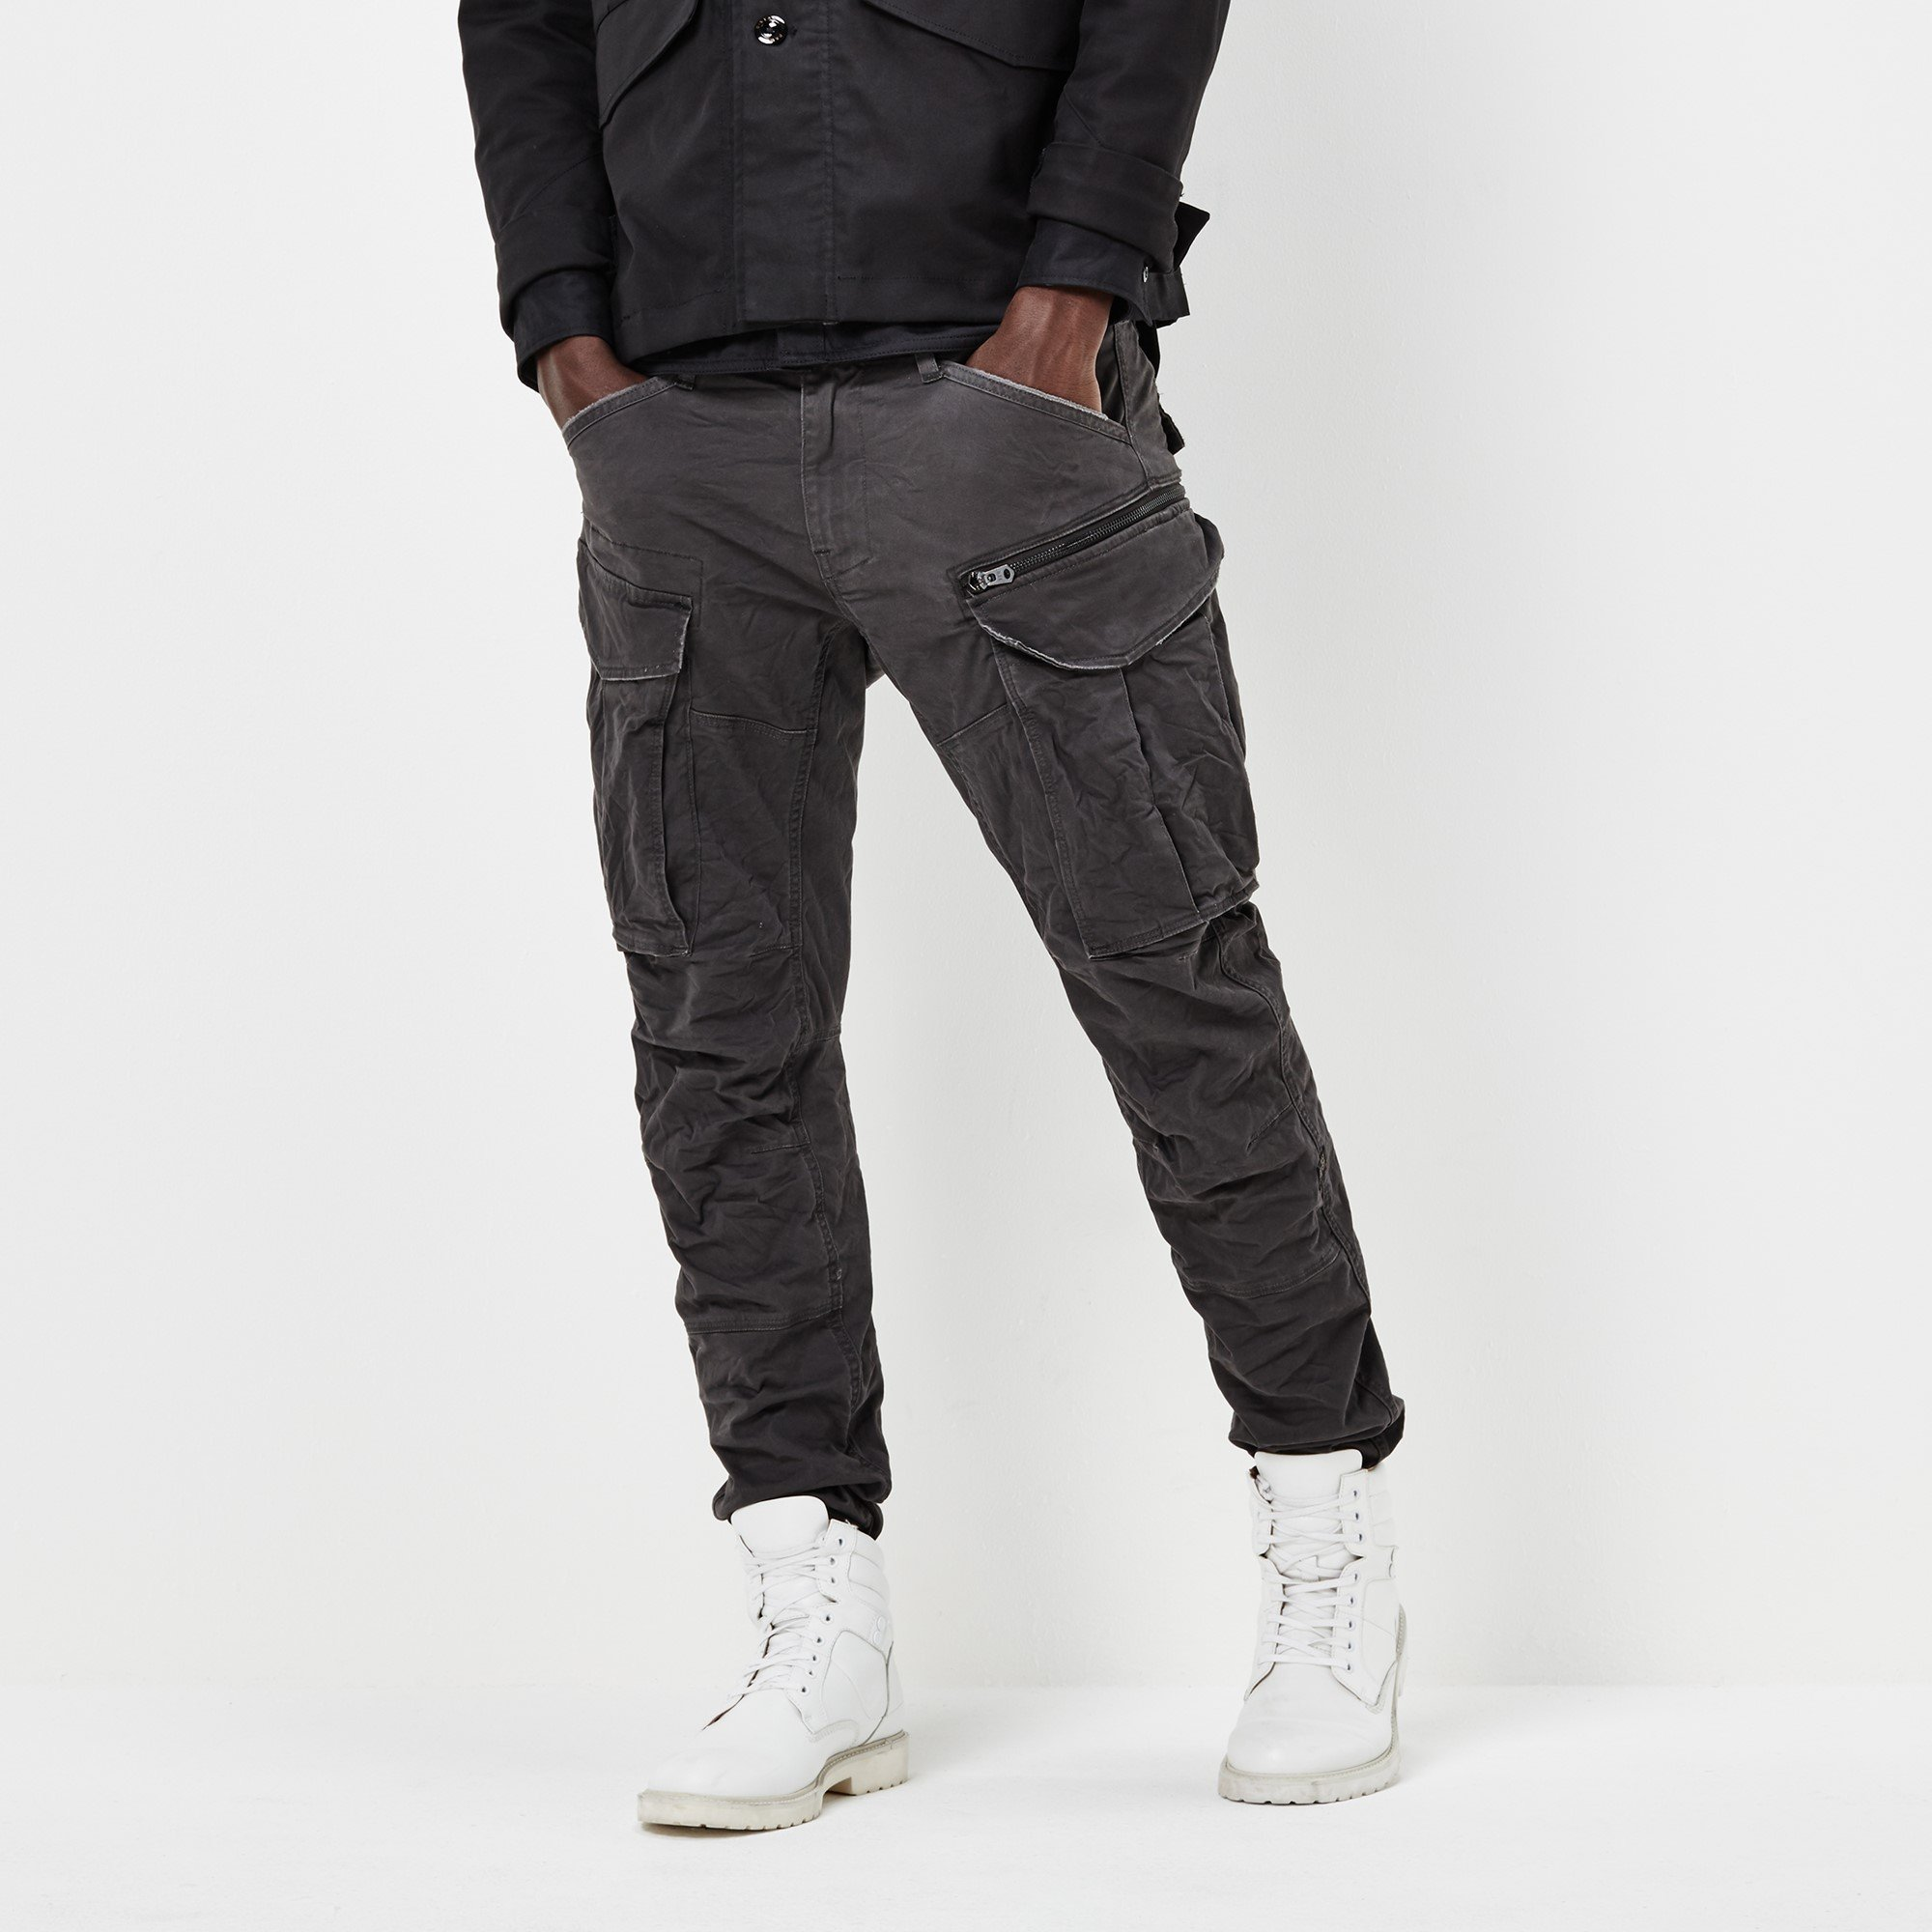 G-Star Raw Men's Rovic Zip 3d Tapered, Raven, 38x34 by G-Star Raw (Image #1)